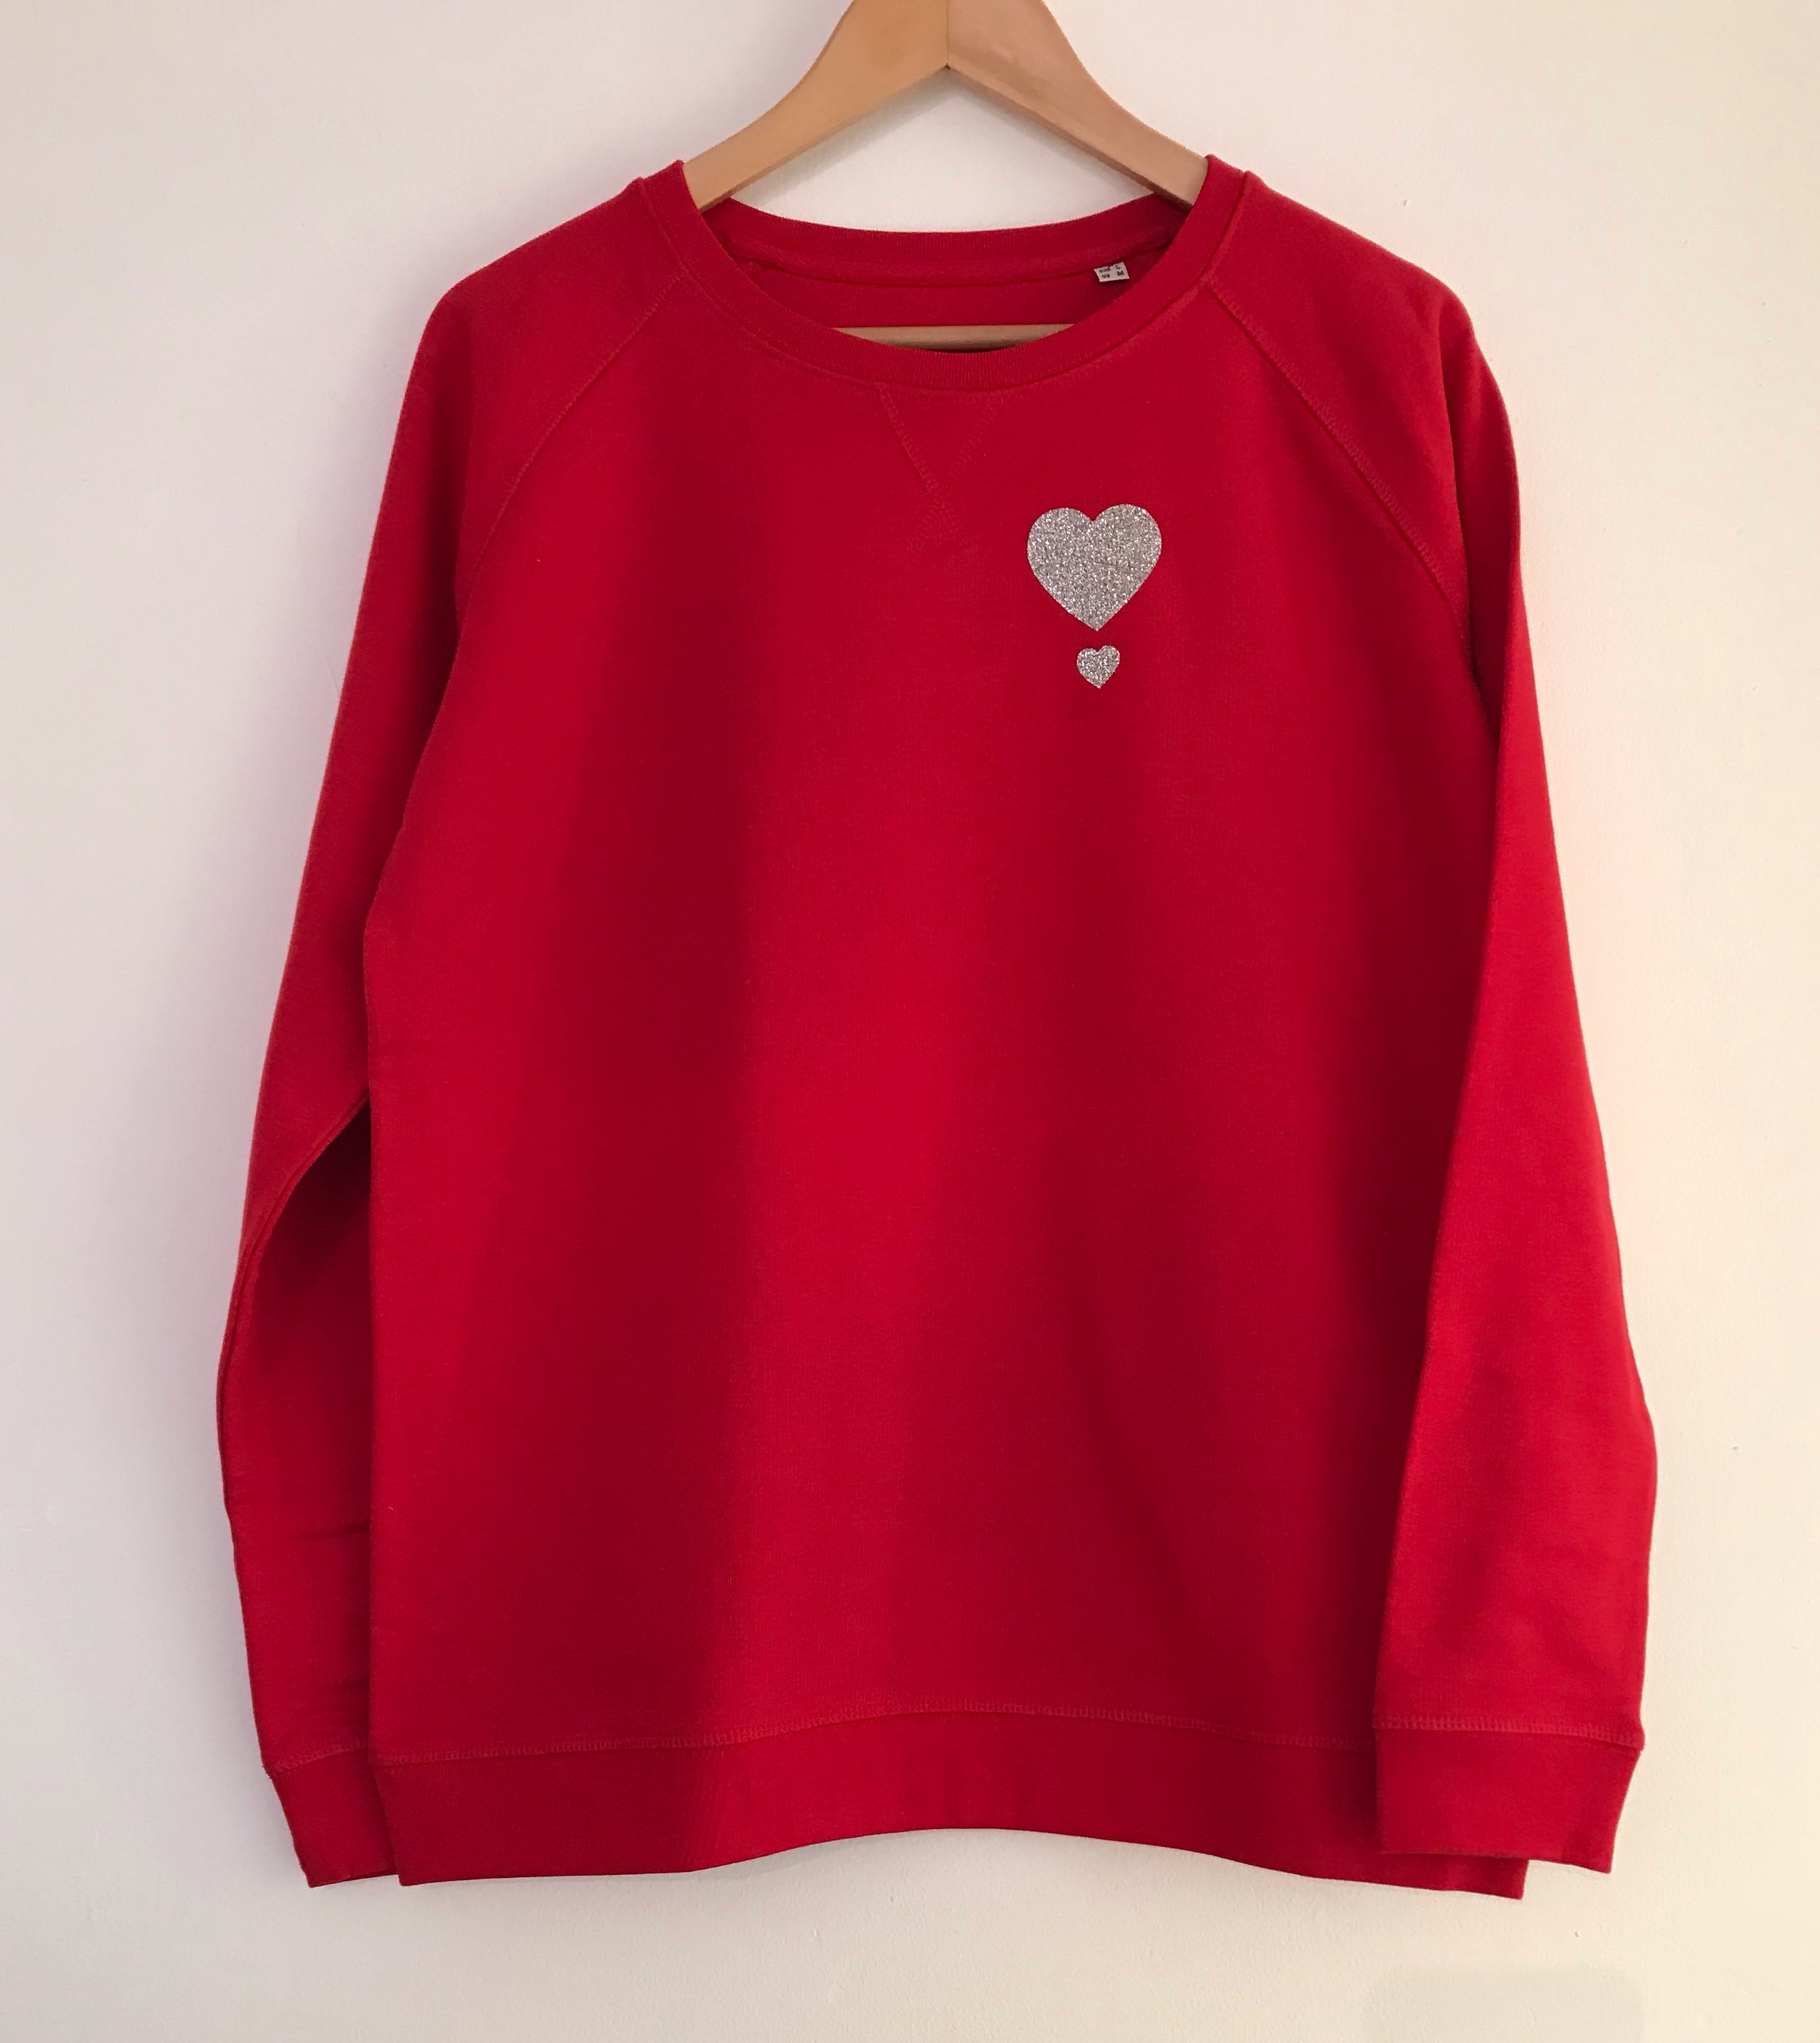 MY ONE HEART LADIES SWEATSHIRT - Founder of My One Heart Laura, has not only created a gorgeous collection of sweatshirts and T-shirts, but purchasing from the My One Heart range, helps raise money and awareness for defibrillators I want everyone to be aware of the importance of having easily accessible defibrillators in public places. From every sale of my products, £5.00 will go towards putting 24-hour defibrillators in public places around the UK.Money raised will go to Heart 2 heart Norfolk.